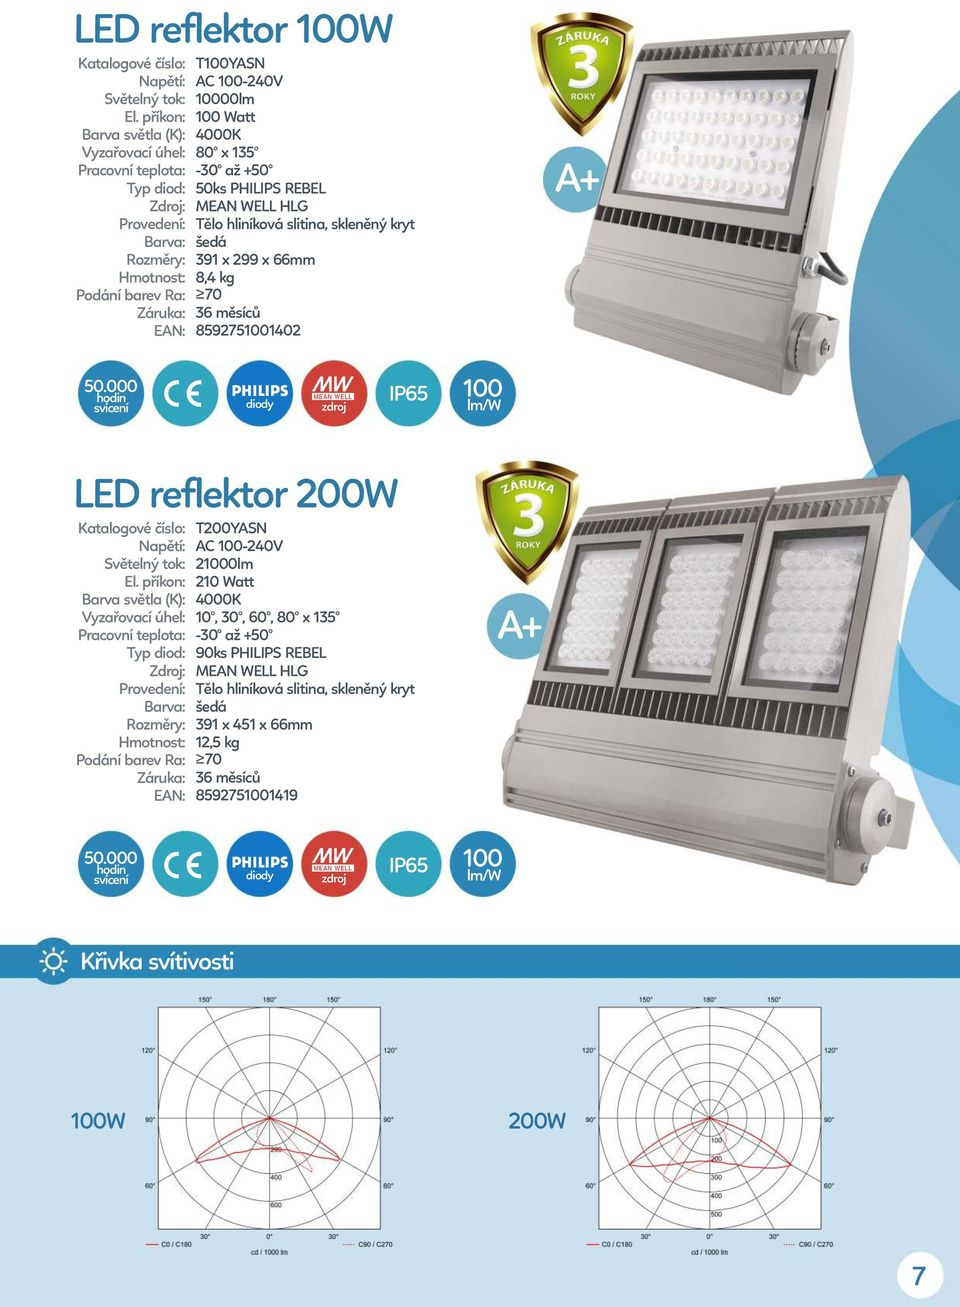 reflektor 200W T200YASN AC 100-240V 21000lm 210 Watt 10, 30, 60, 80 x 135 90ks PHILIPS REBEL